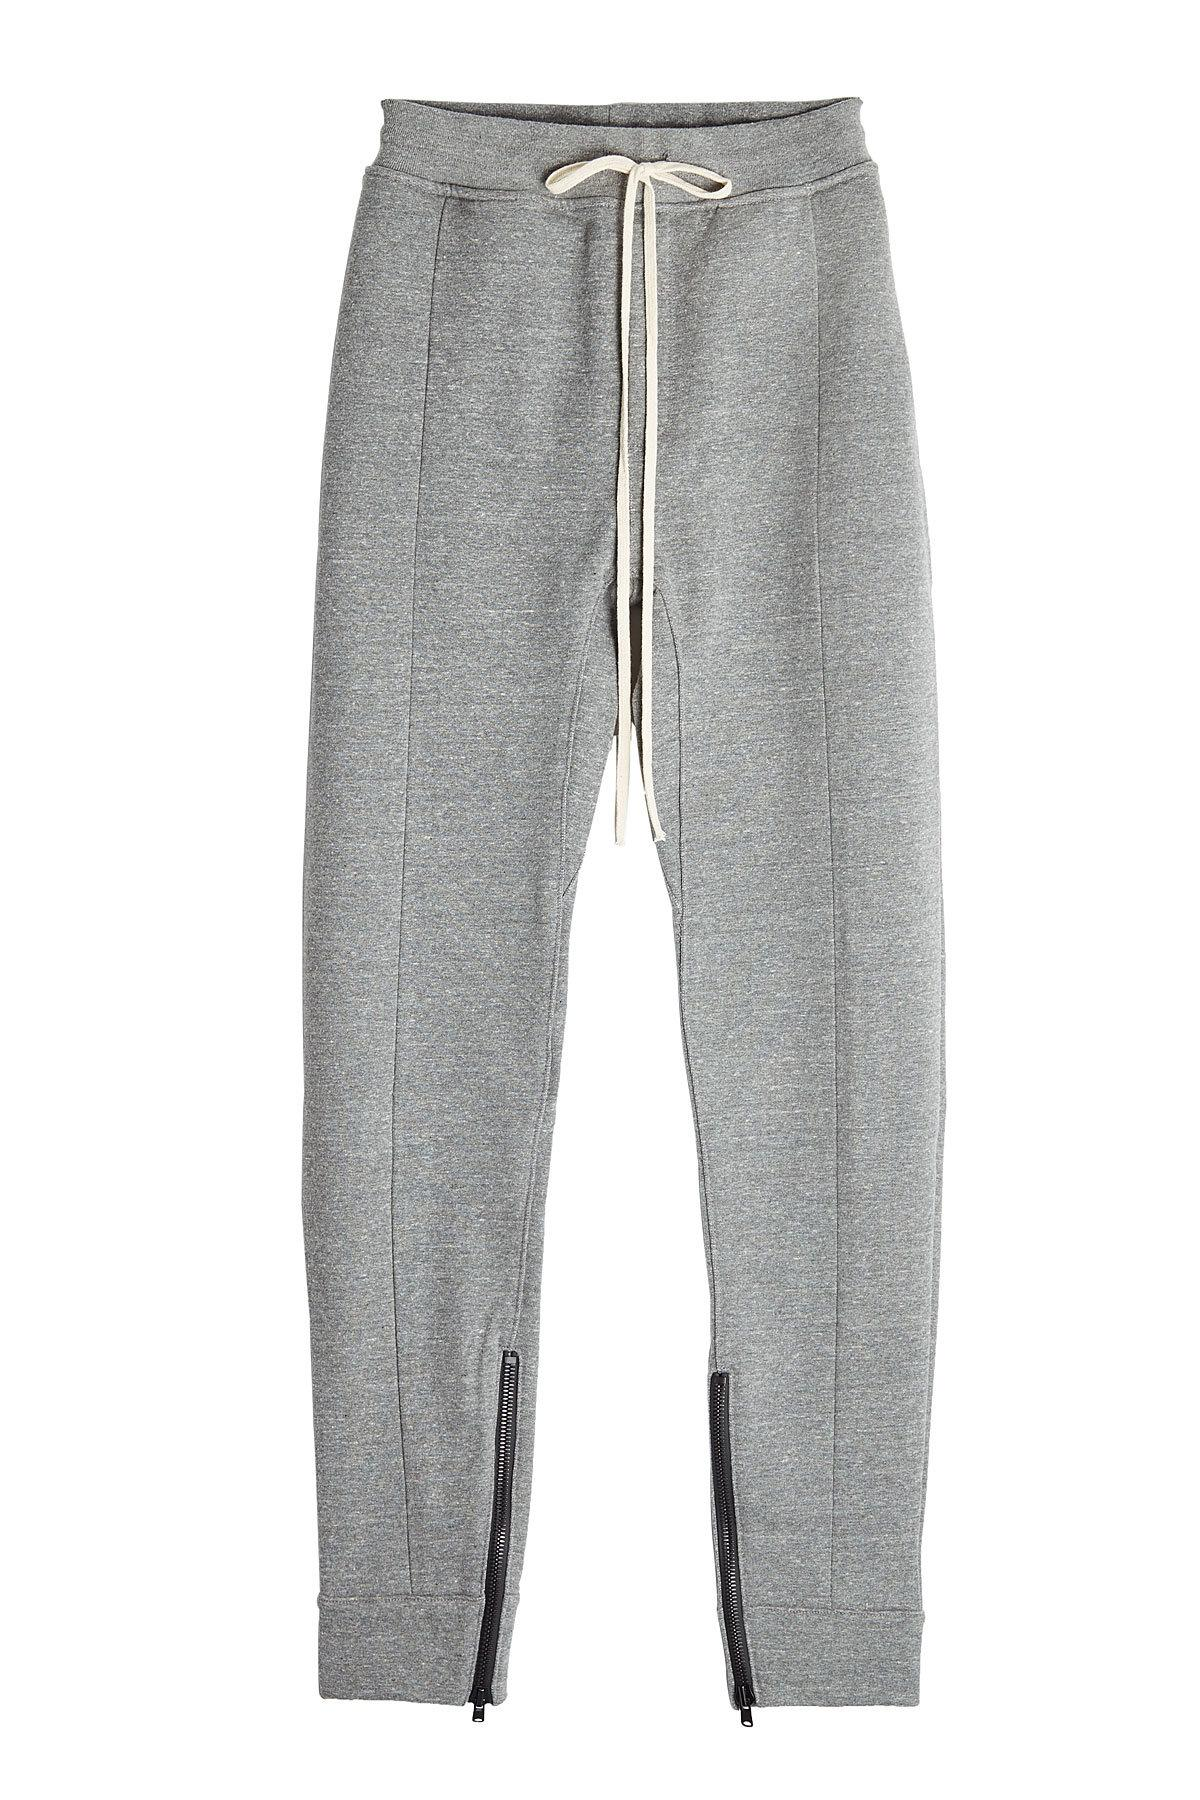 Fear Of God Sweatpants With Zipped Ankles In Grey